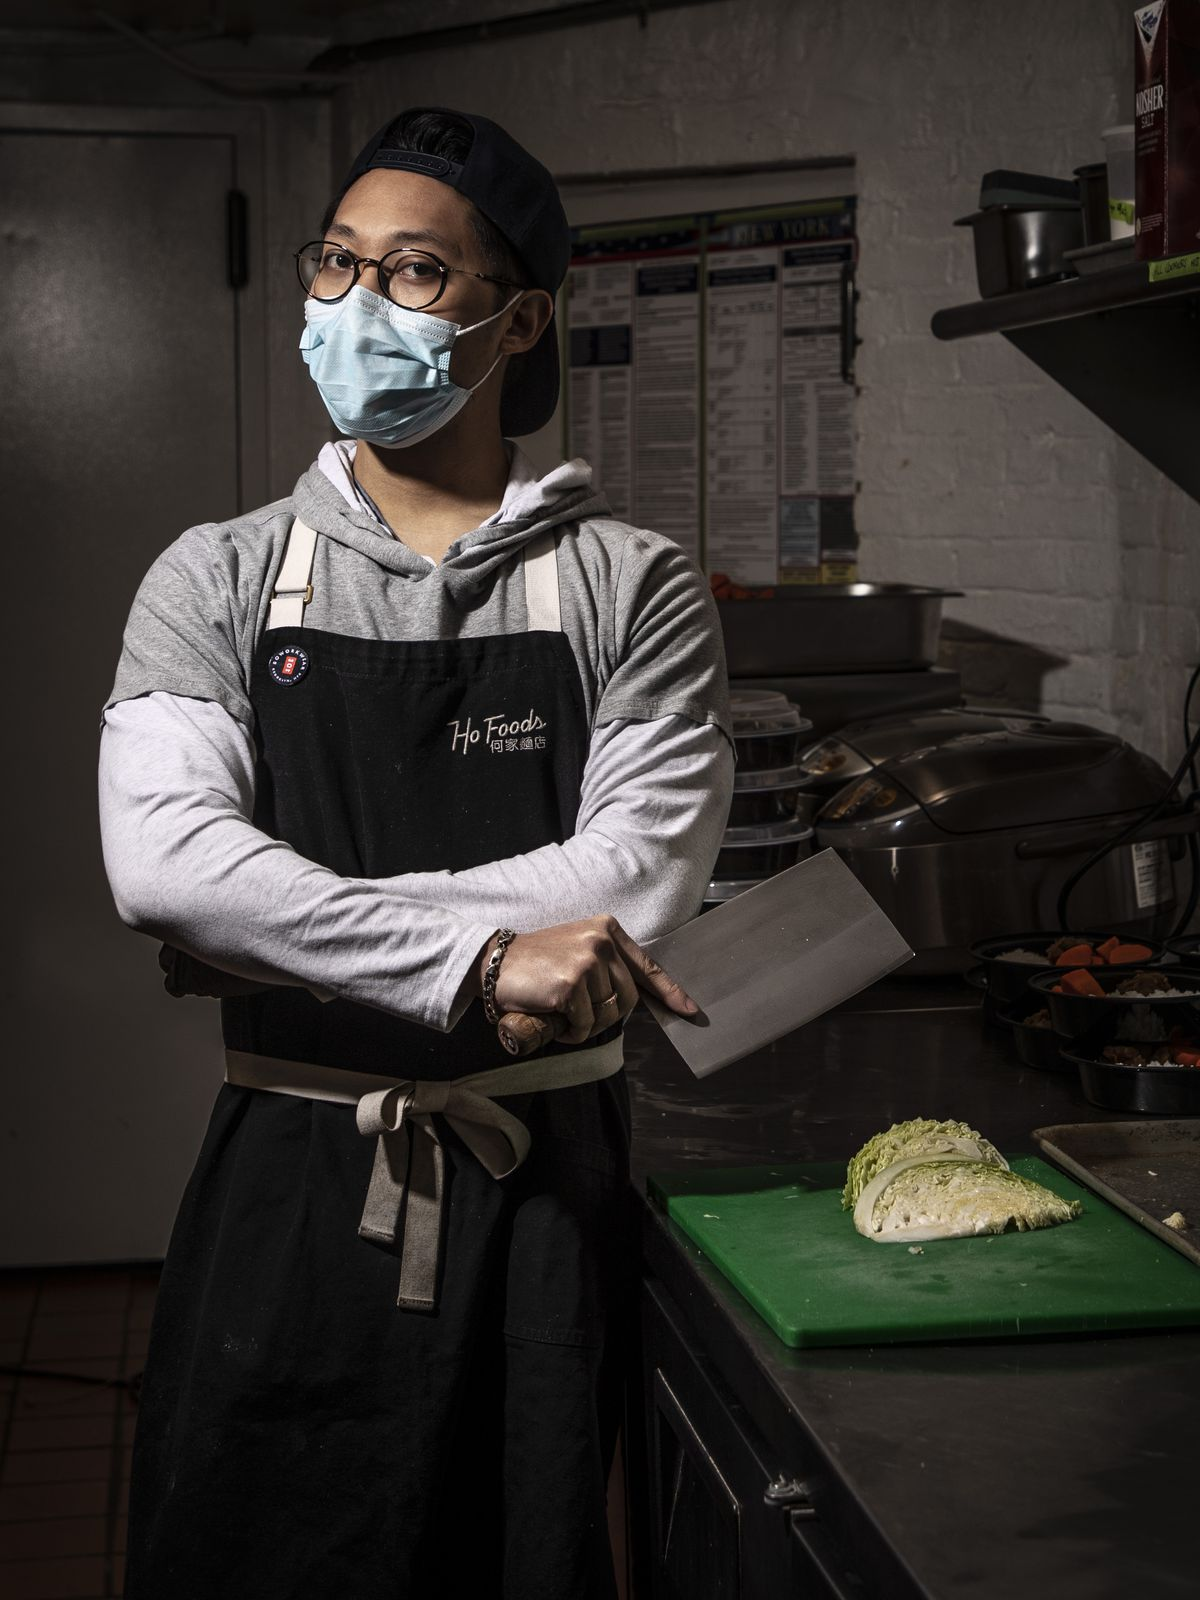 The cook Trevor Liu wore a face mask and held a knife in the kitchen at Ho Foods